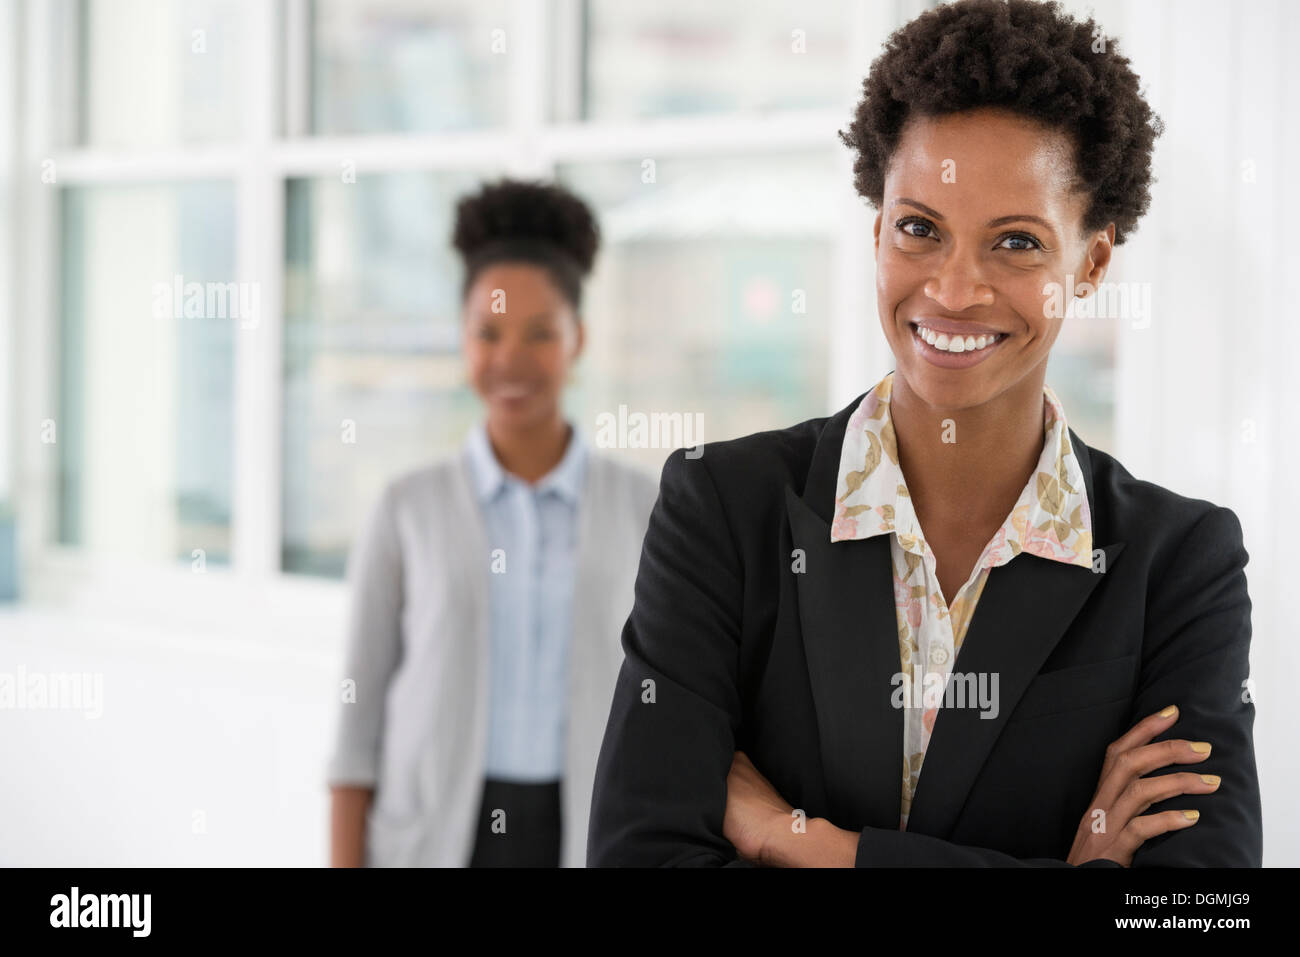 Business people. Two women. - Stock Image